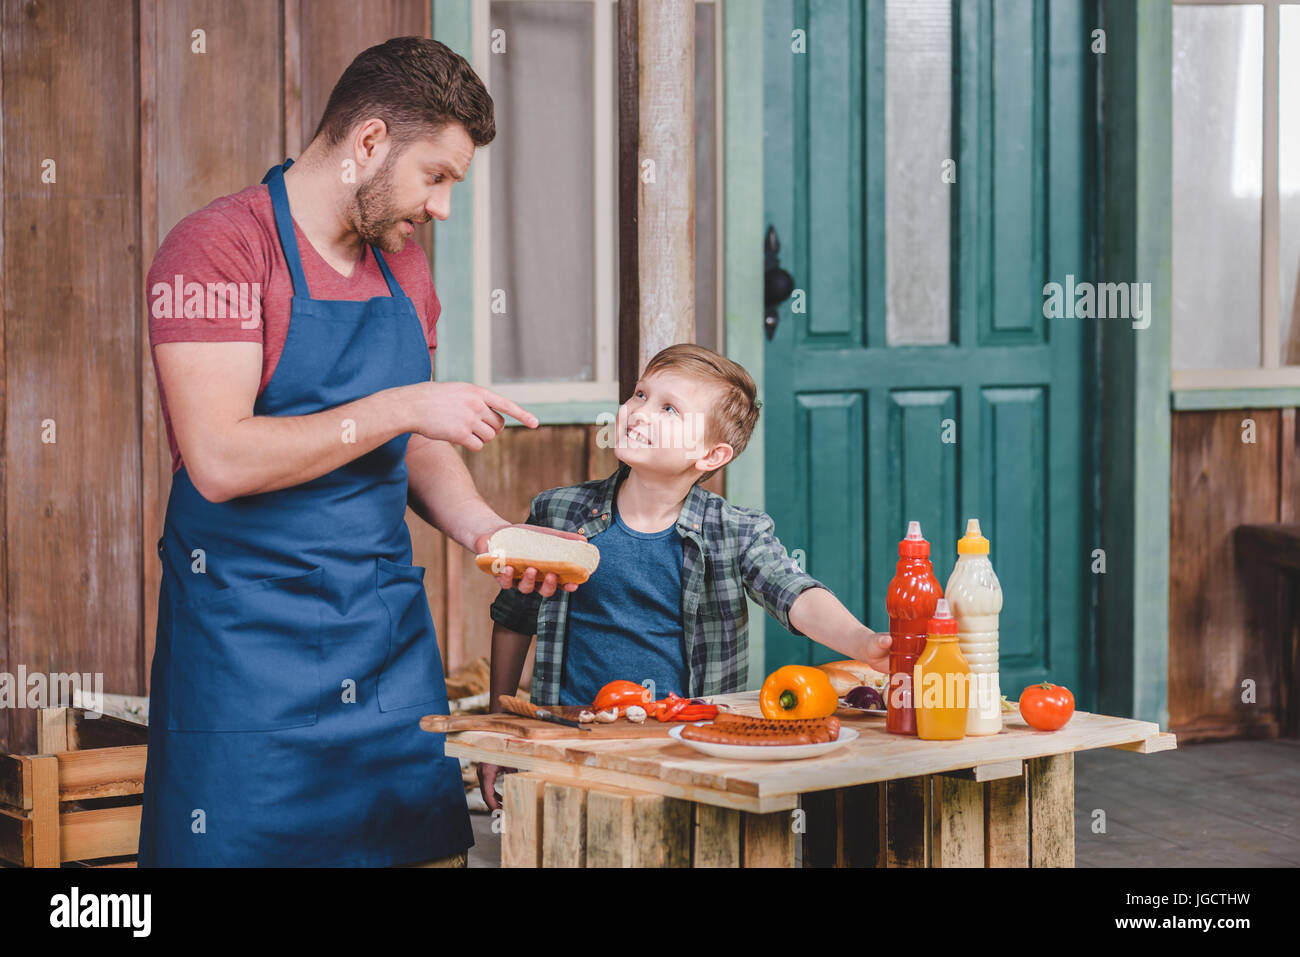 Cute little boy with father in apron preparing hot dog together in backyard, dad and son cooking concept - Stock Image